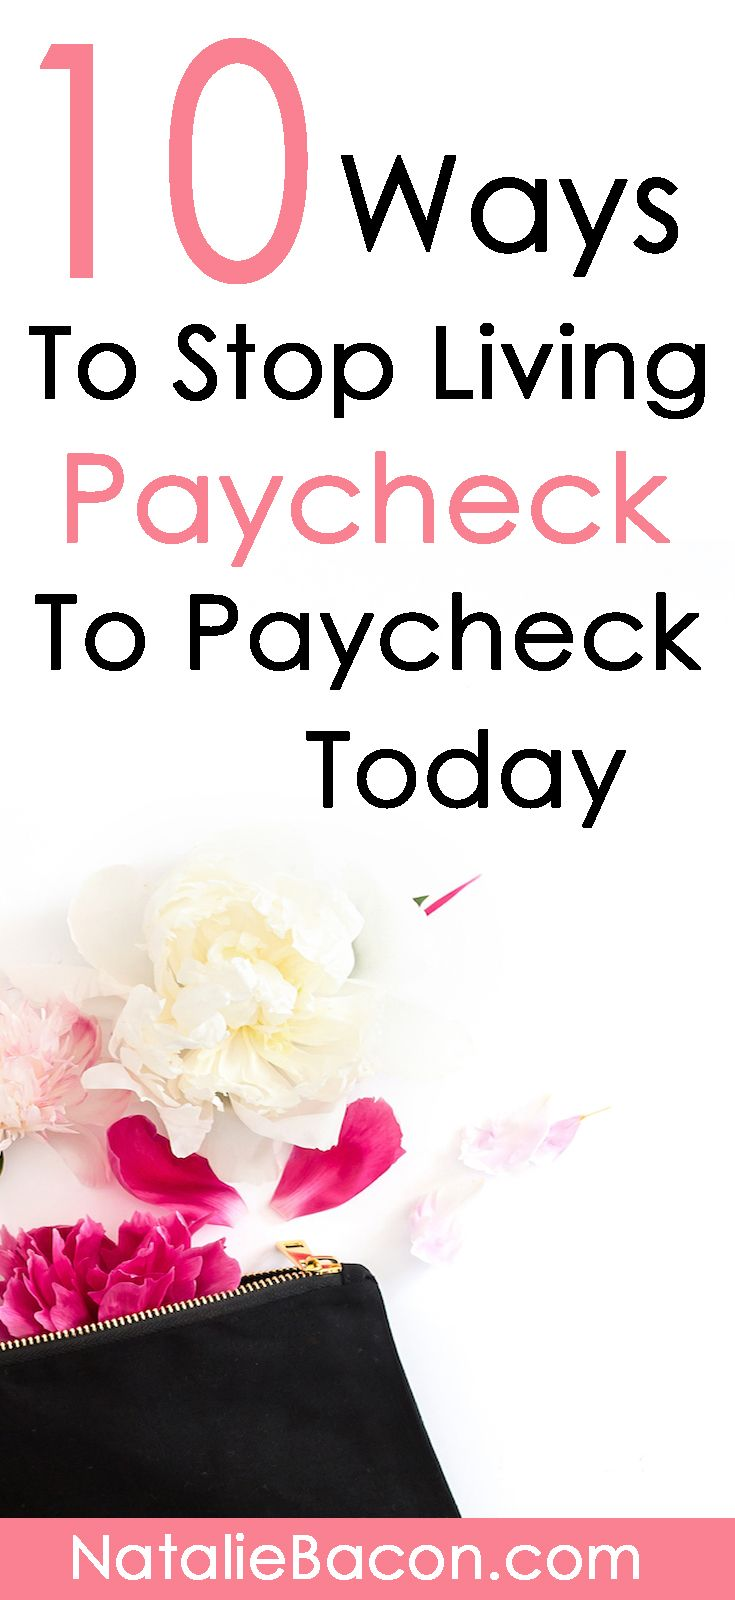 How to stop living paycheck to paycheck. Learn how to improve your finances with these 10 actionable finance tips #financetips #savemoney #makemoney #NatalieBacon